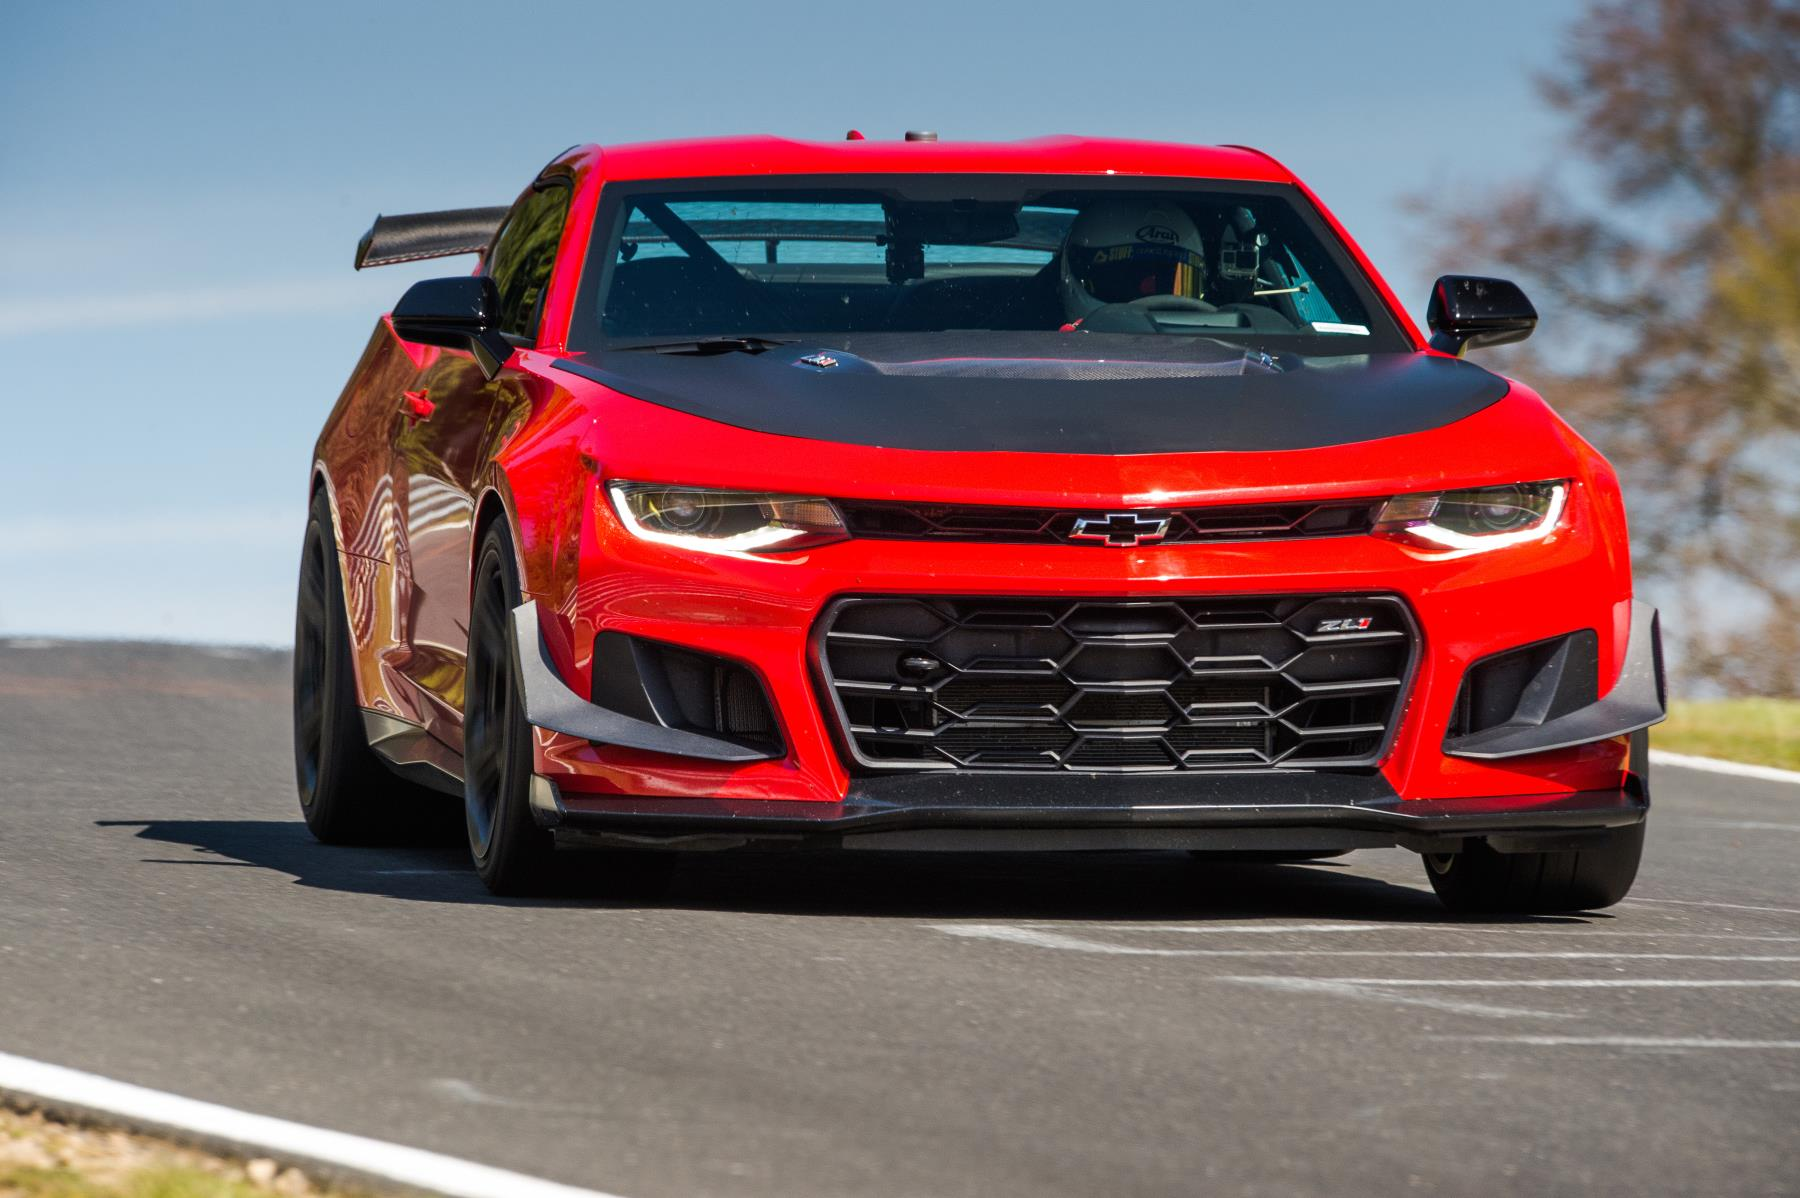 Chevy Camaro ZL1 1LE laps the 'Ring in 7:16.04